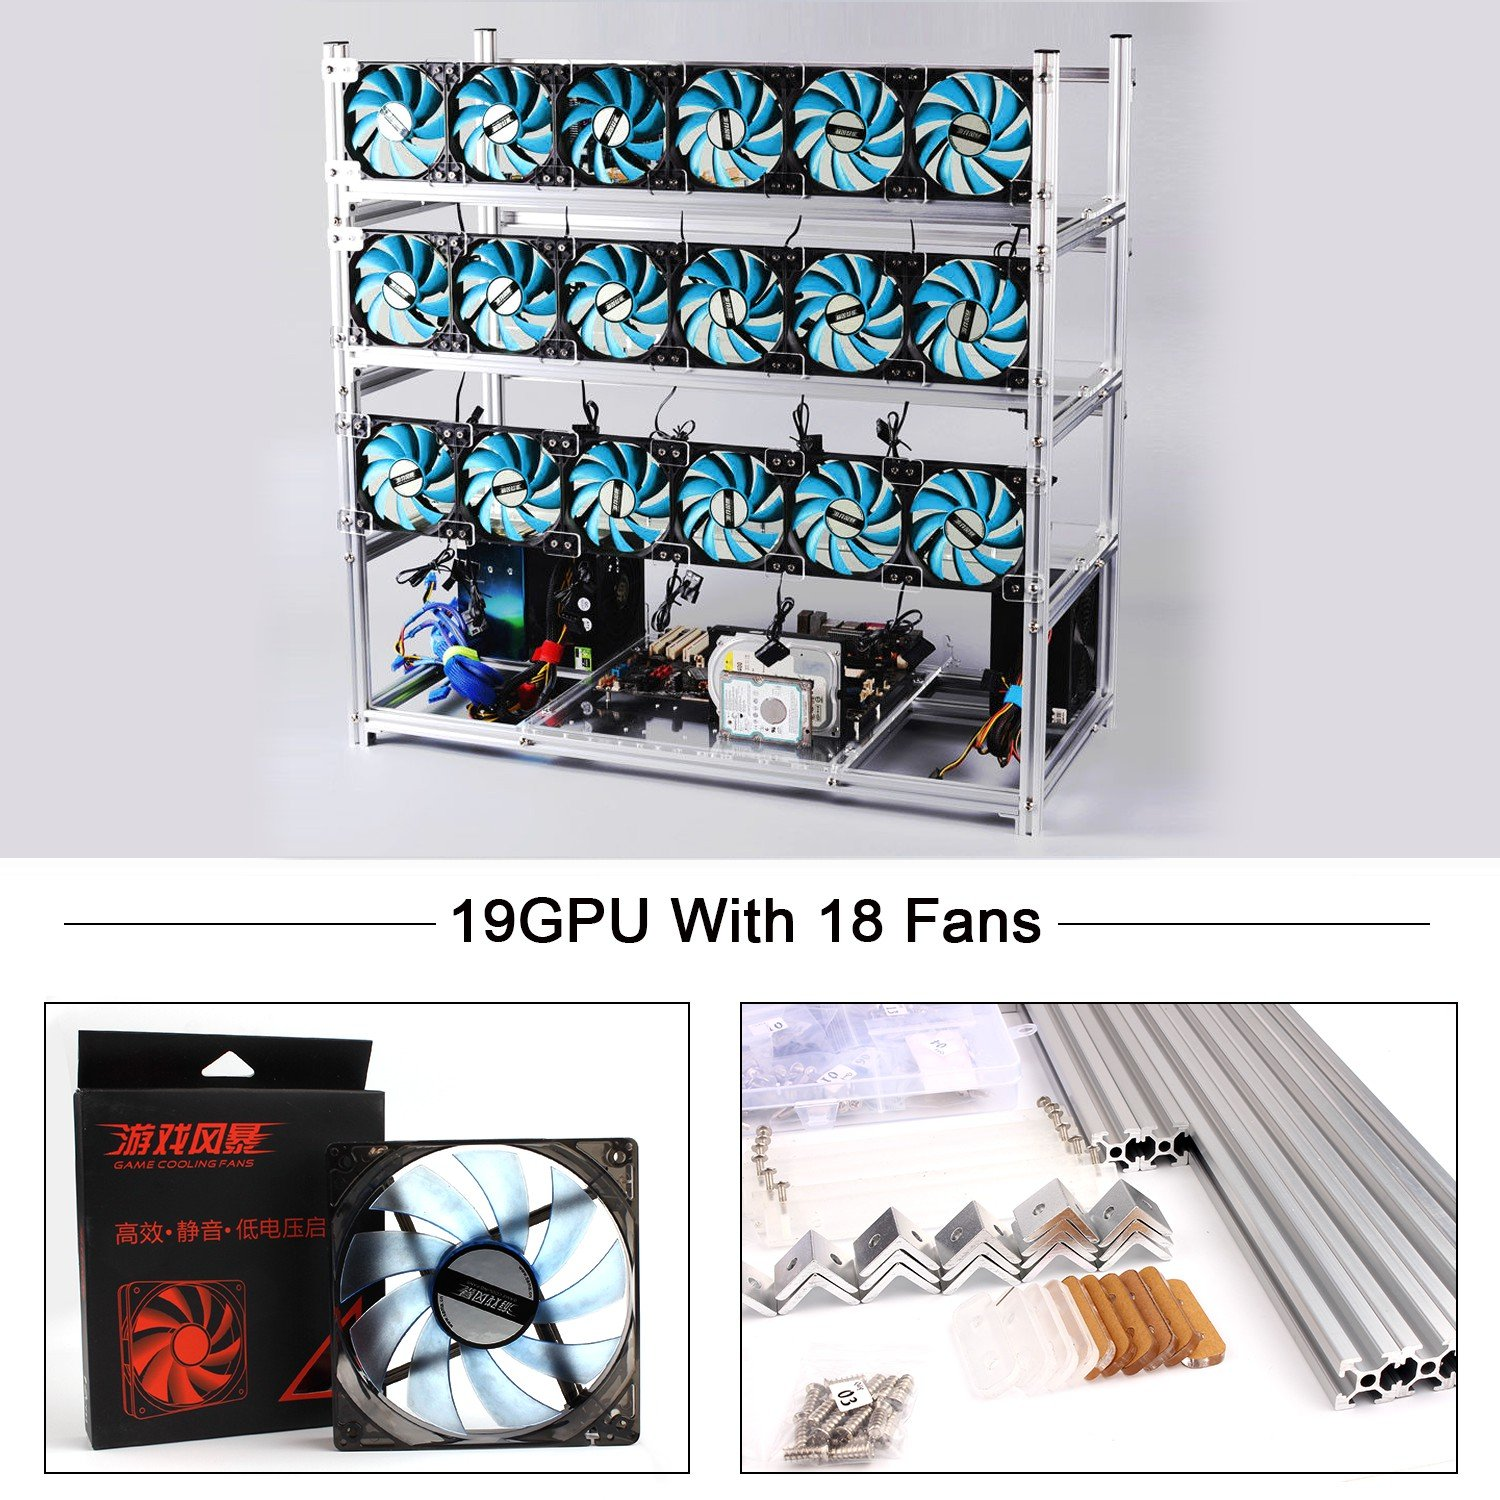 19 GPU Miner Case With 18 Blue Fans, Aluminum Stackable Mining Rig Open Air Frame For Ethereum(ETH)/ETC/ ZCash Ethereum,Bitcoin,Cryptocurrency and Altcoins to improve GPU performance and life